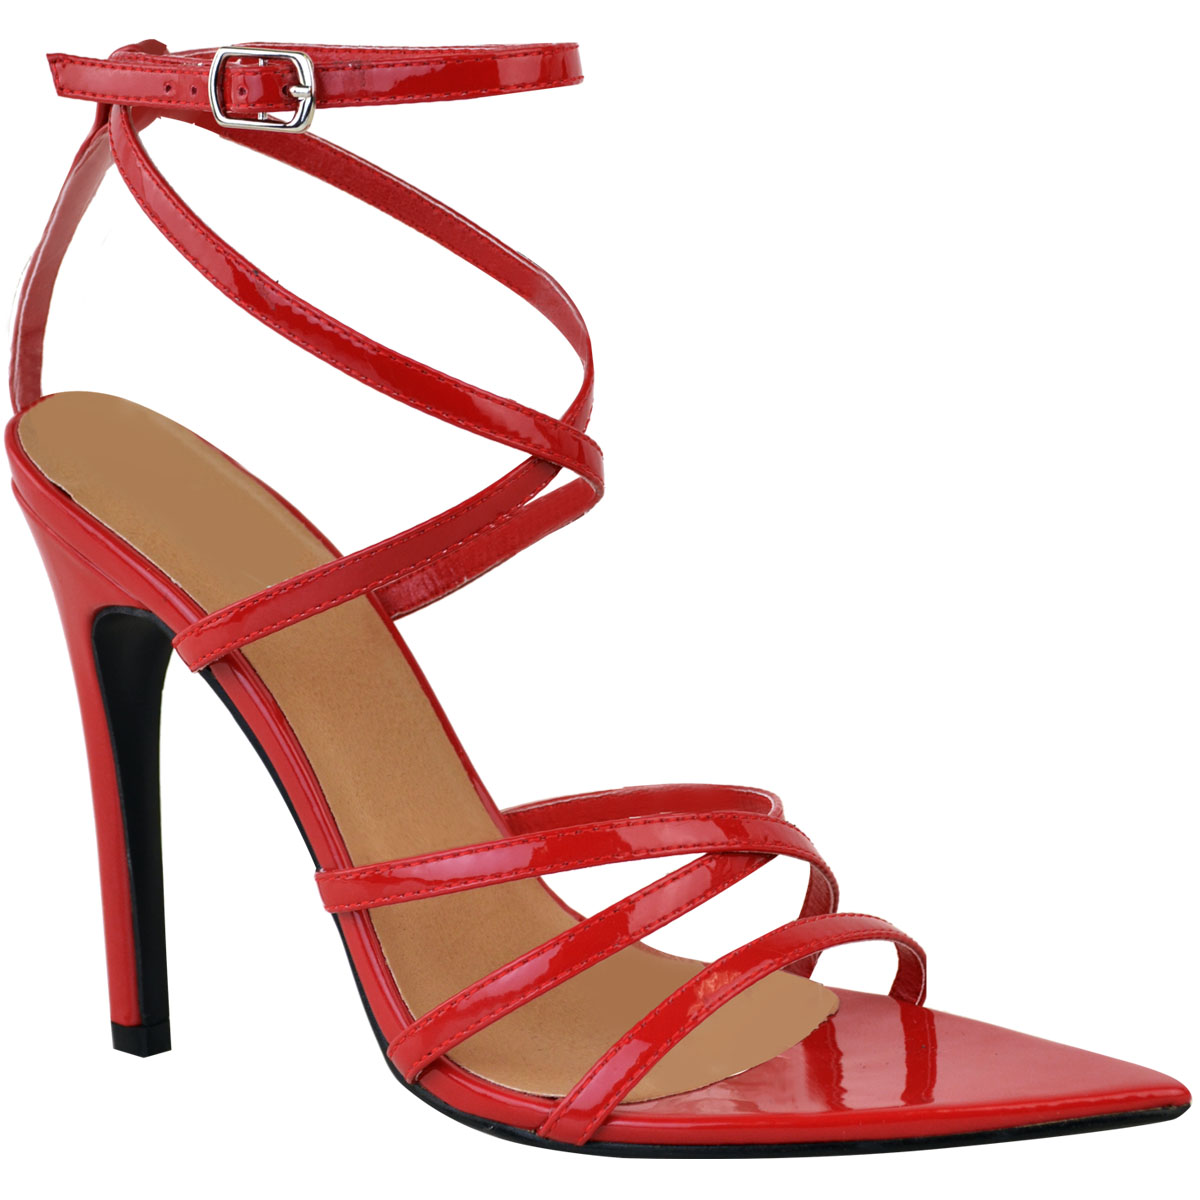 Womens-Ladies-Pointed-Barely-There-High-Heels-Sandals-Strappy-Black-Patent-Size thumbnail 8